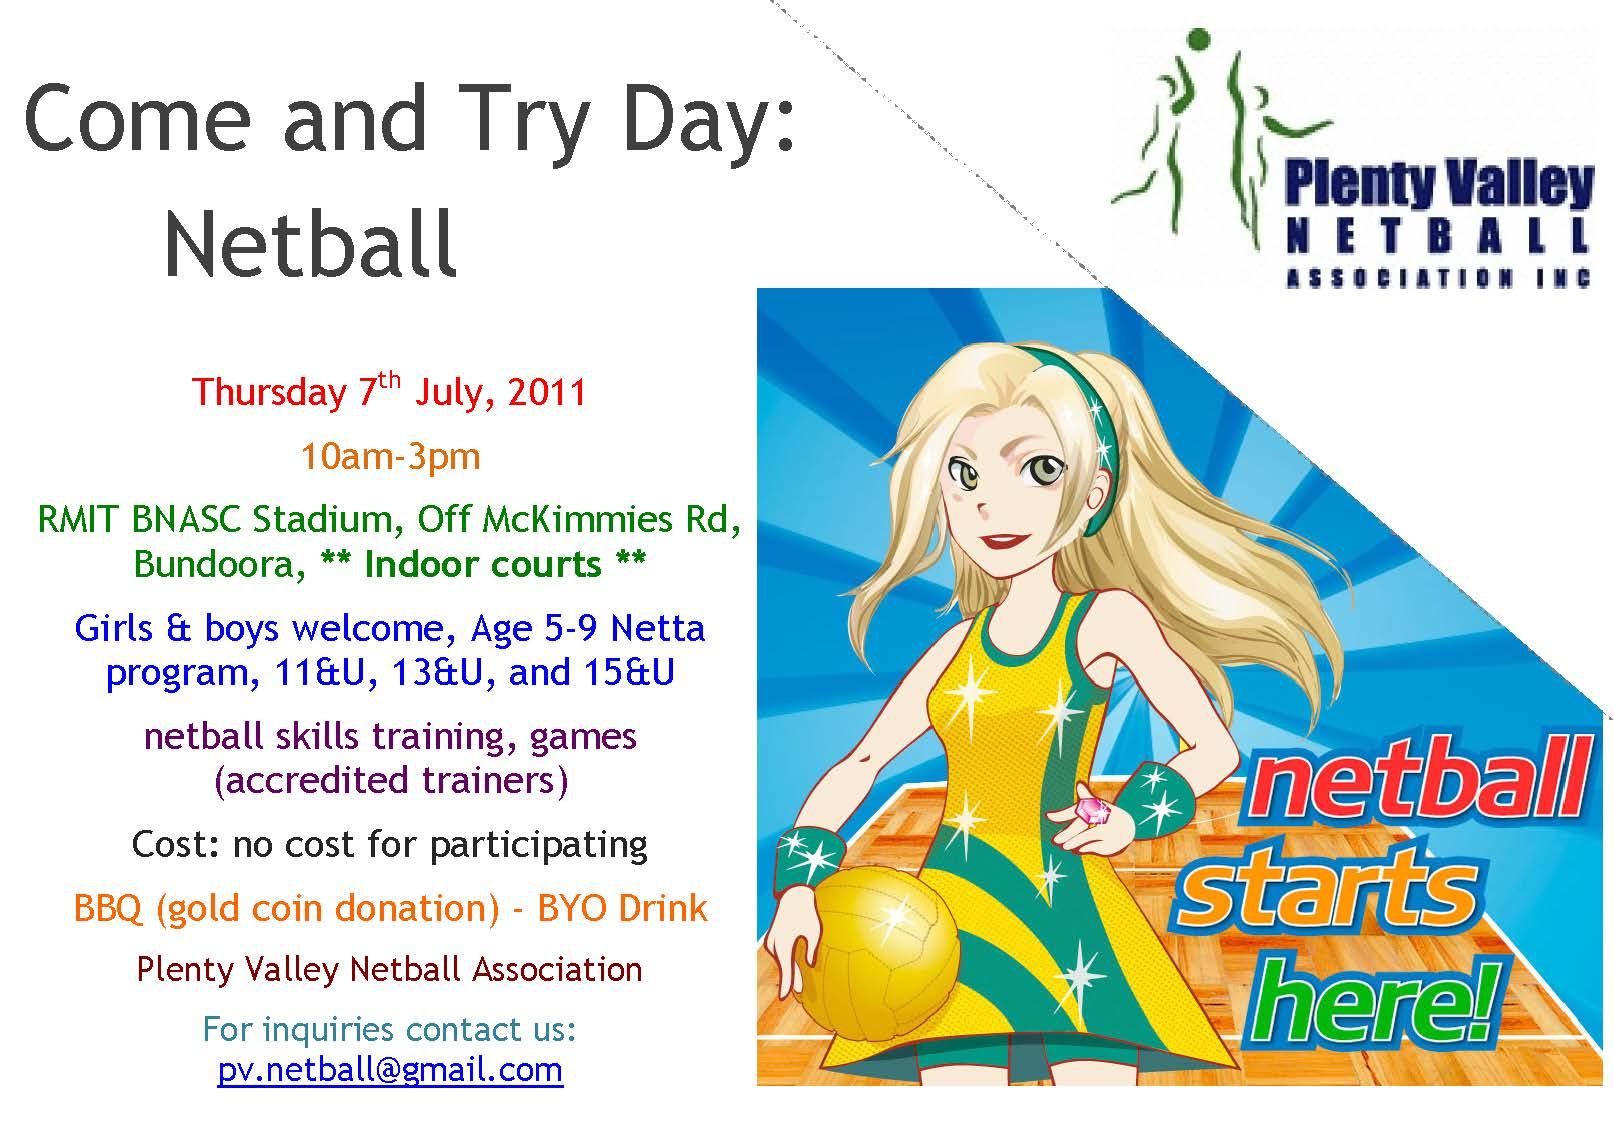 Plenty Valley Netball Association